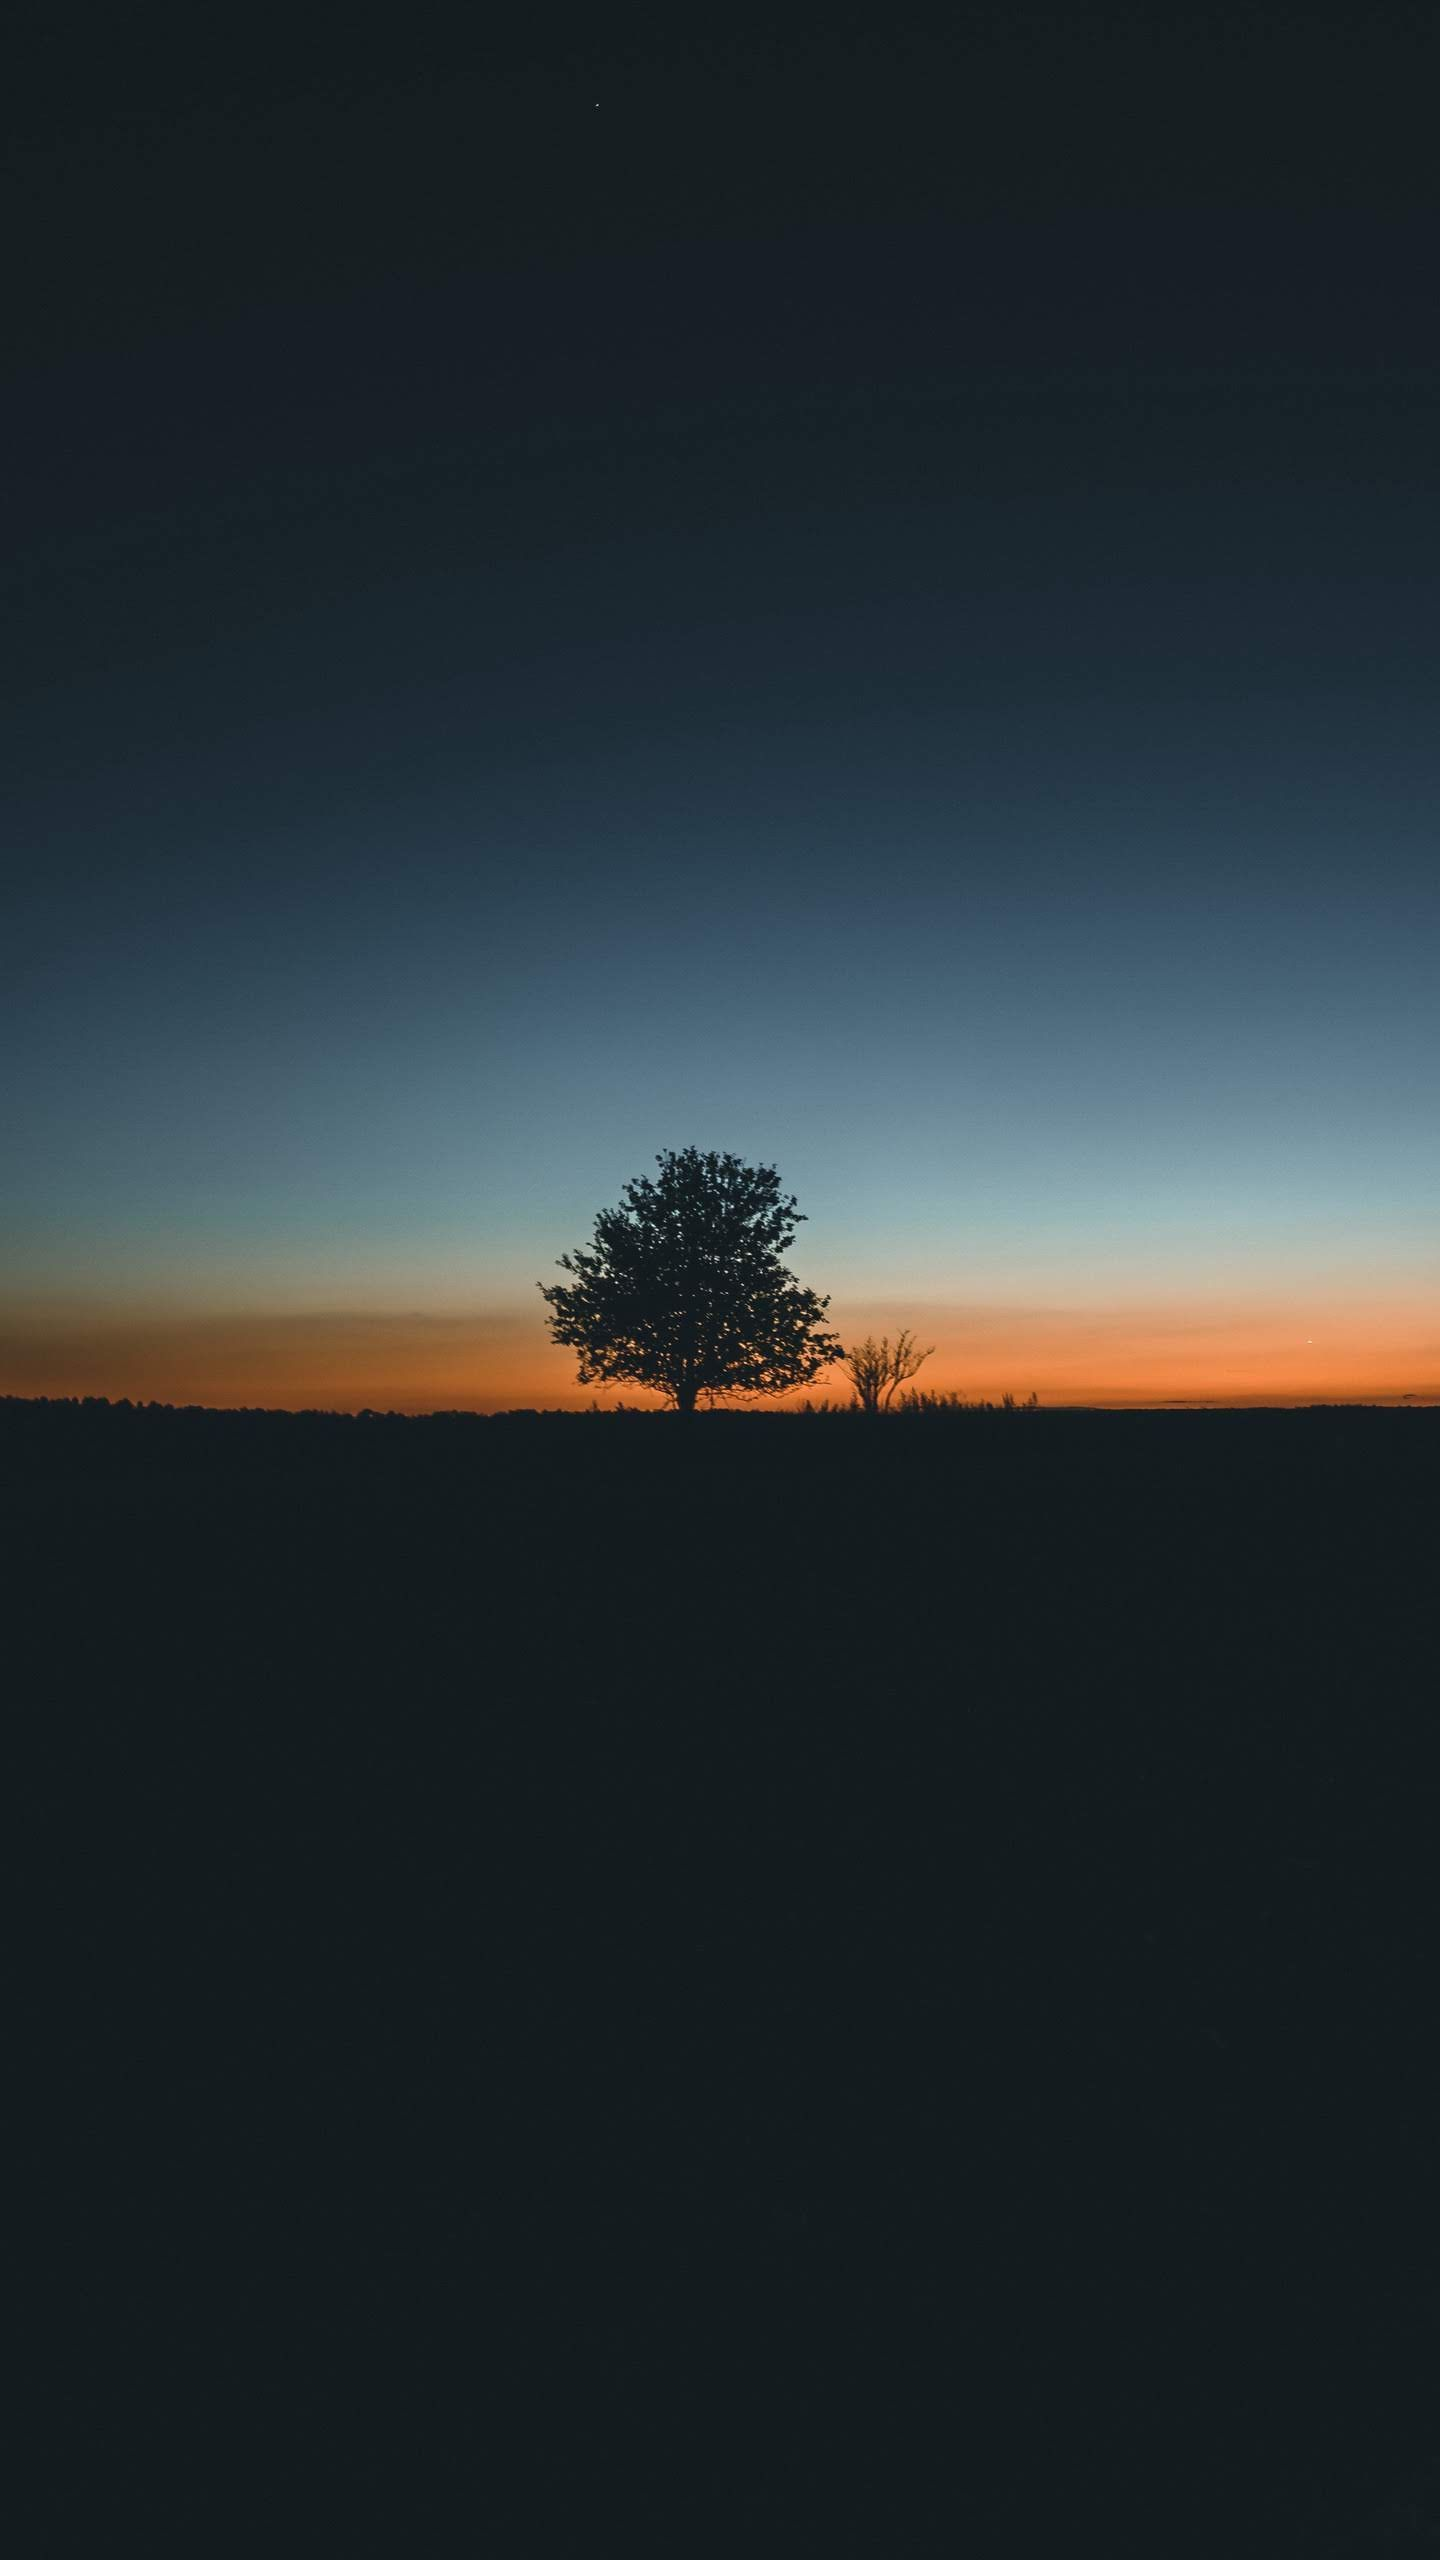 Get Latest Wallpaper For Iphone Xr 2019 Sunset Iphone Wallpaper Nature Wallpaper Tree Silhouette